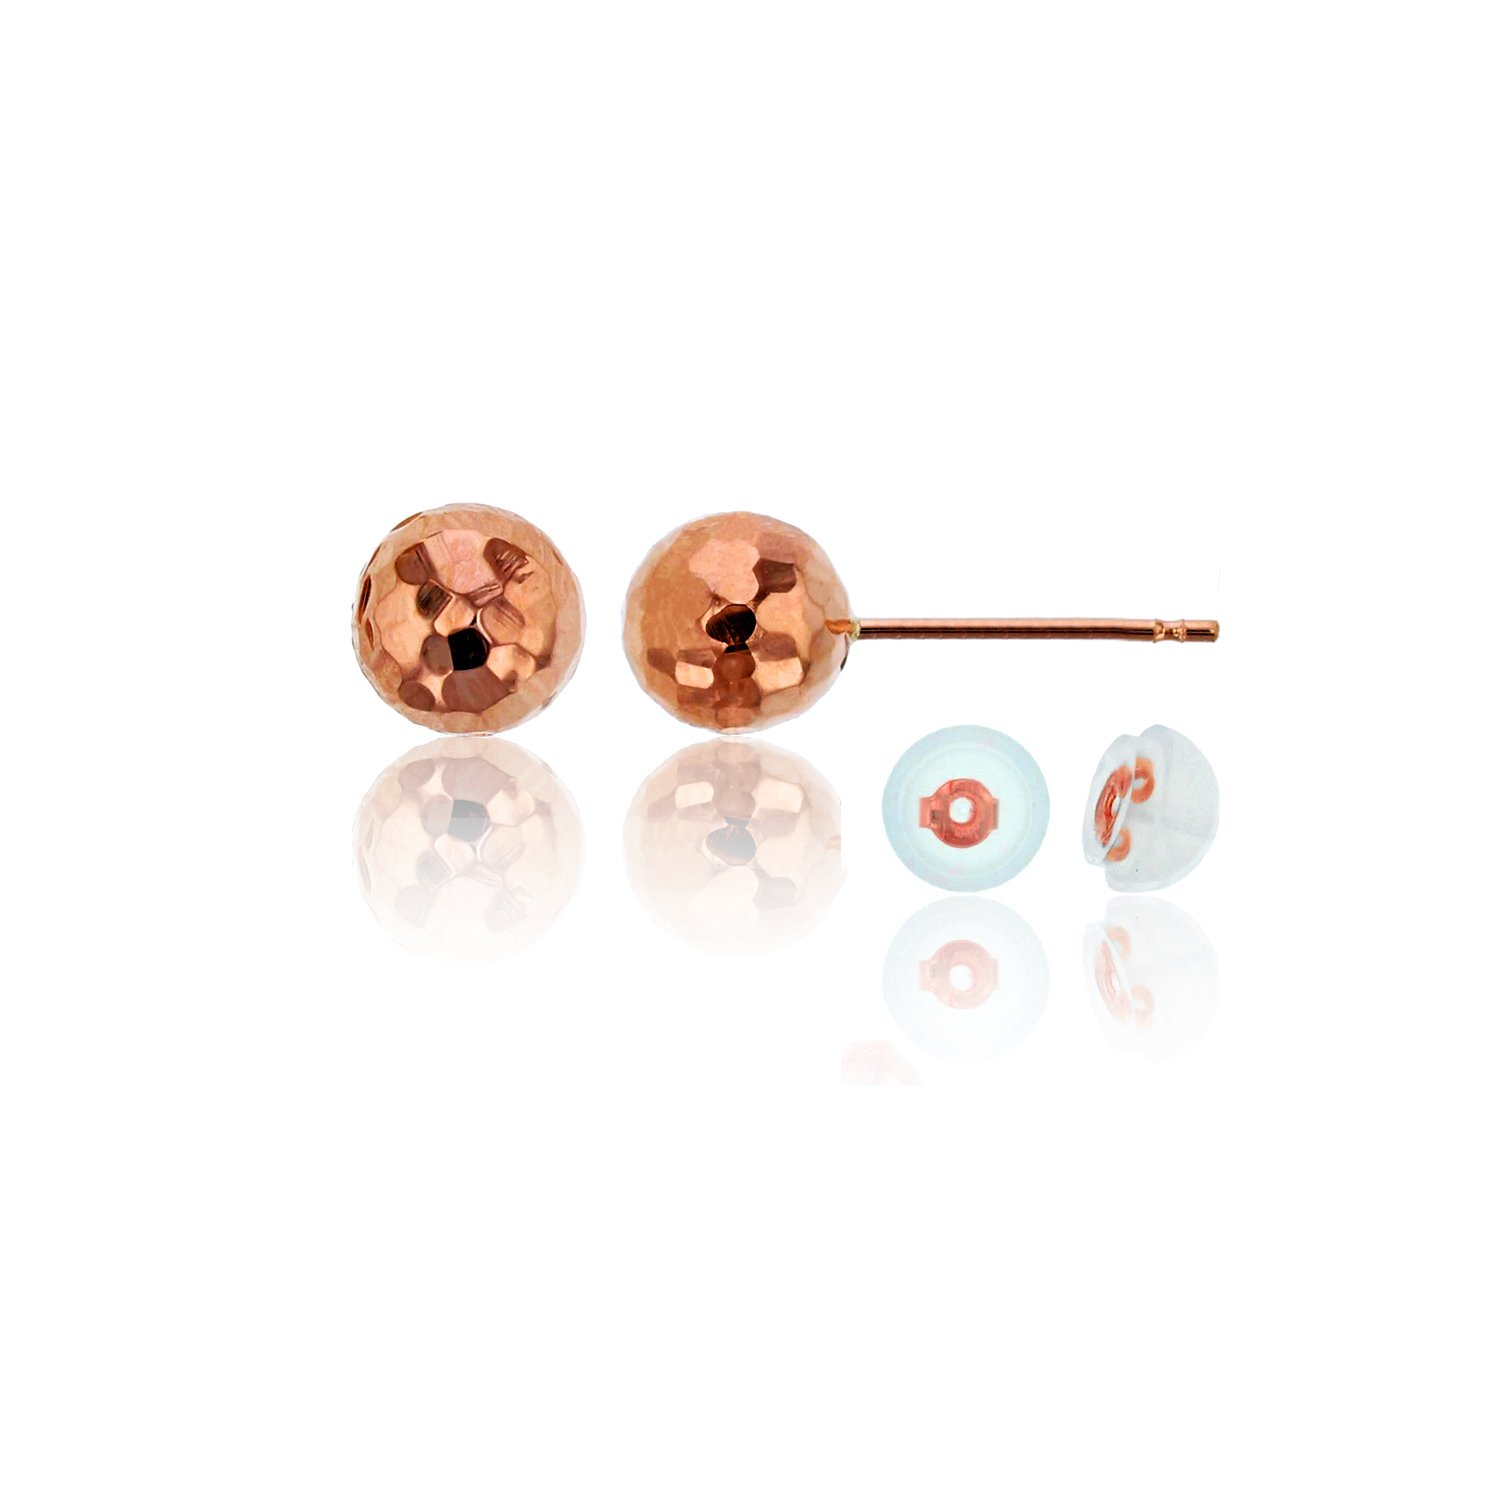 14K Gold 8mm DC Ball Stud Earring /& 14K Silicone Back